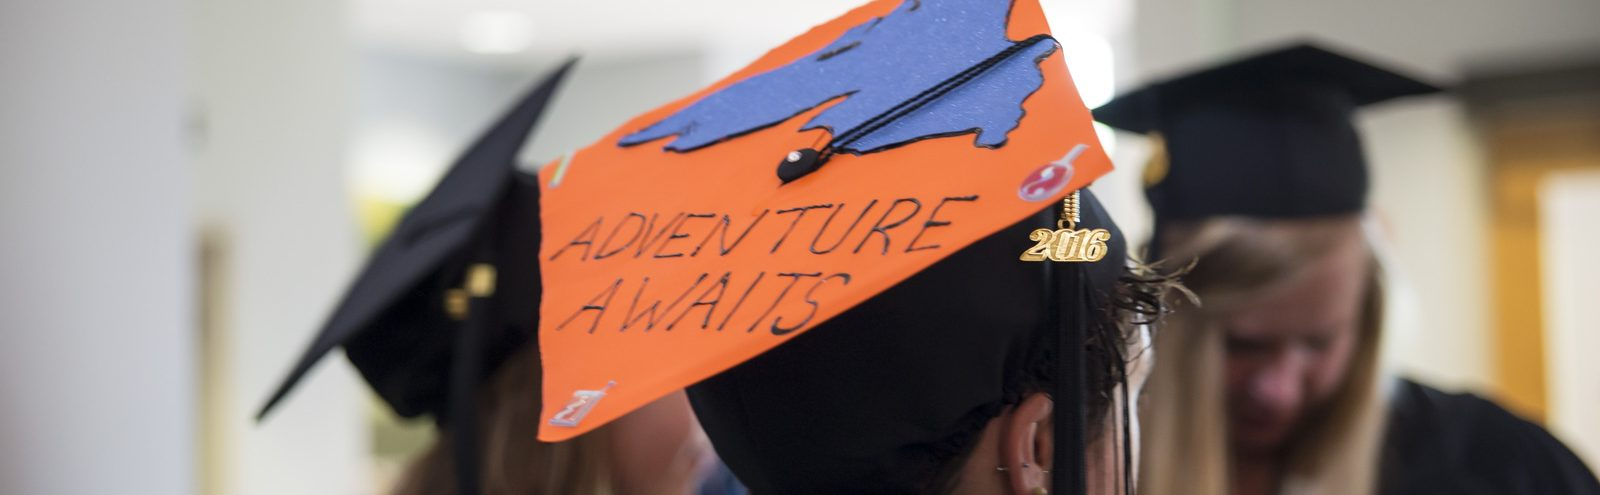 Mortar board decorated with Lake Superior